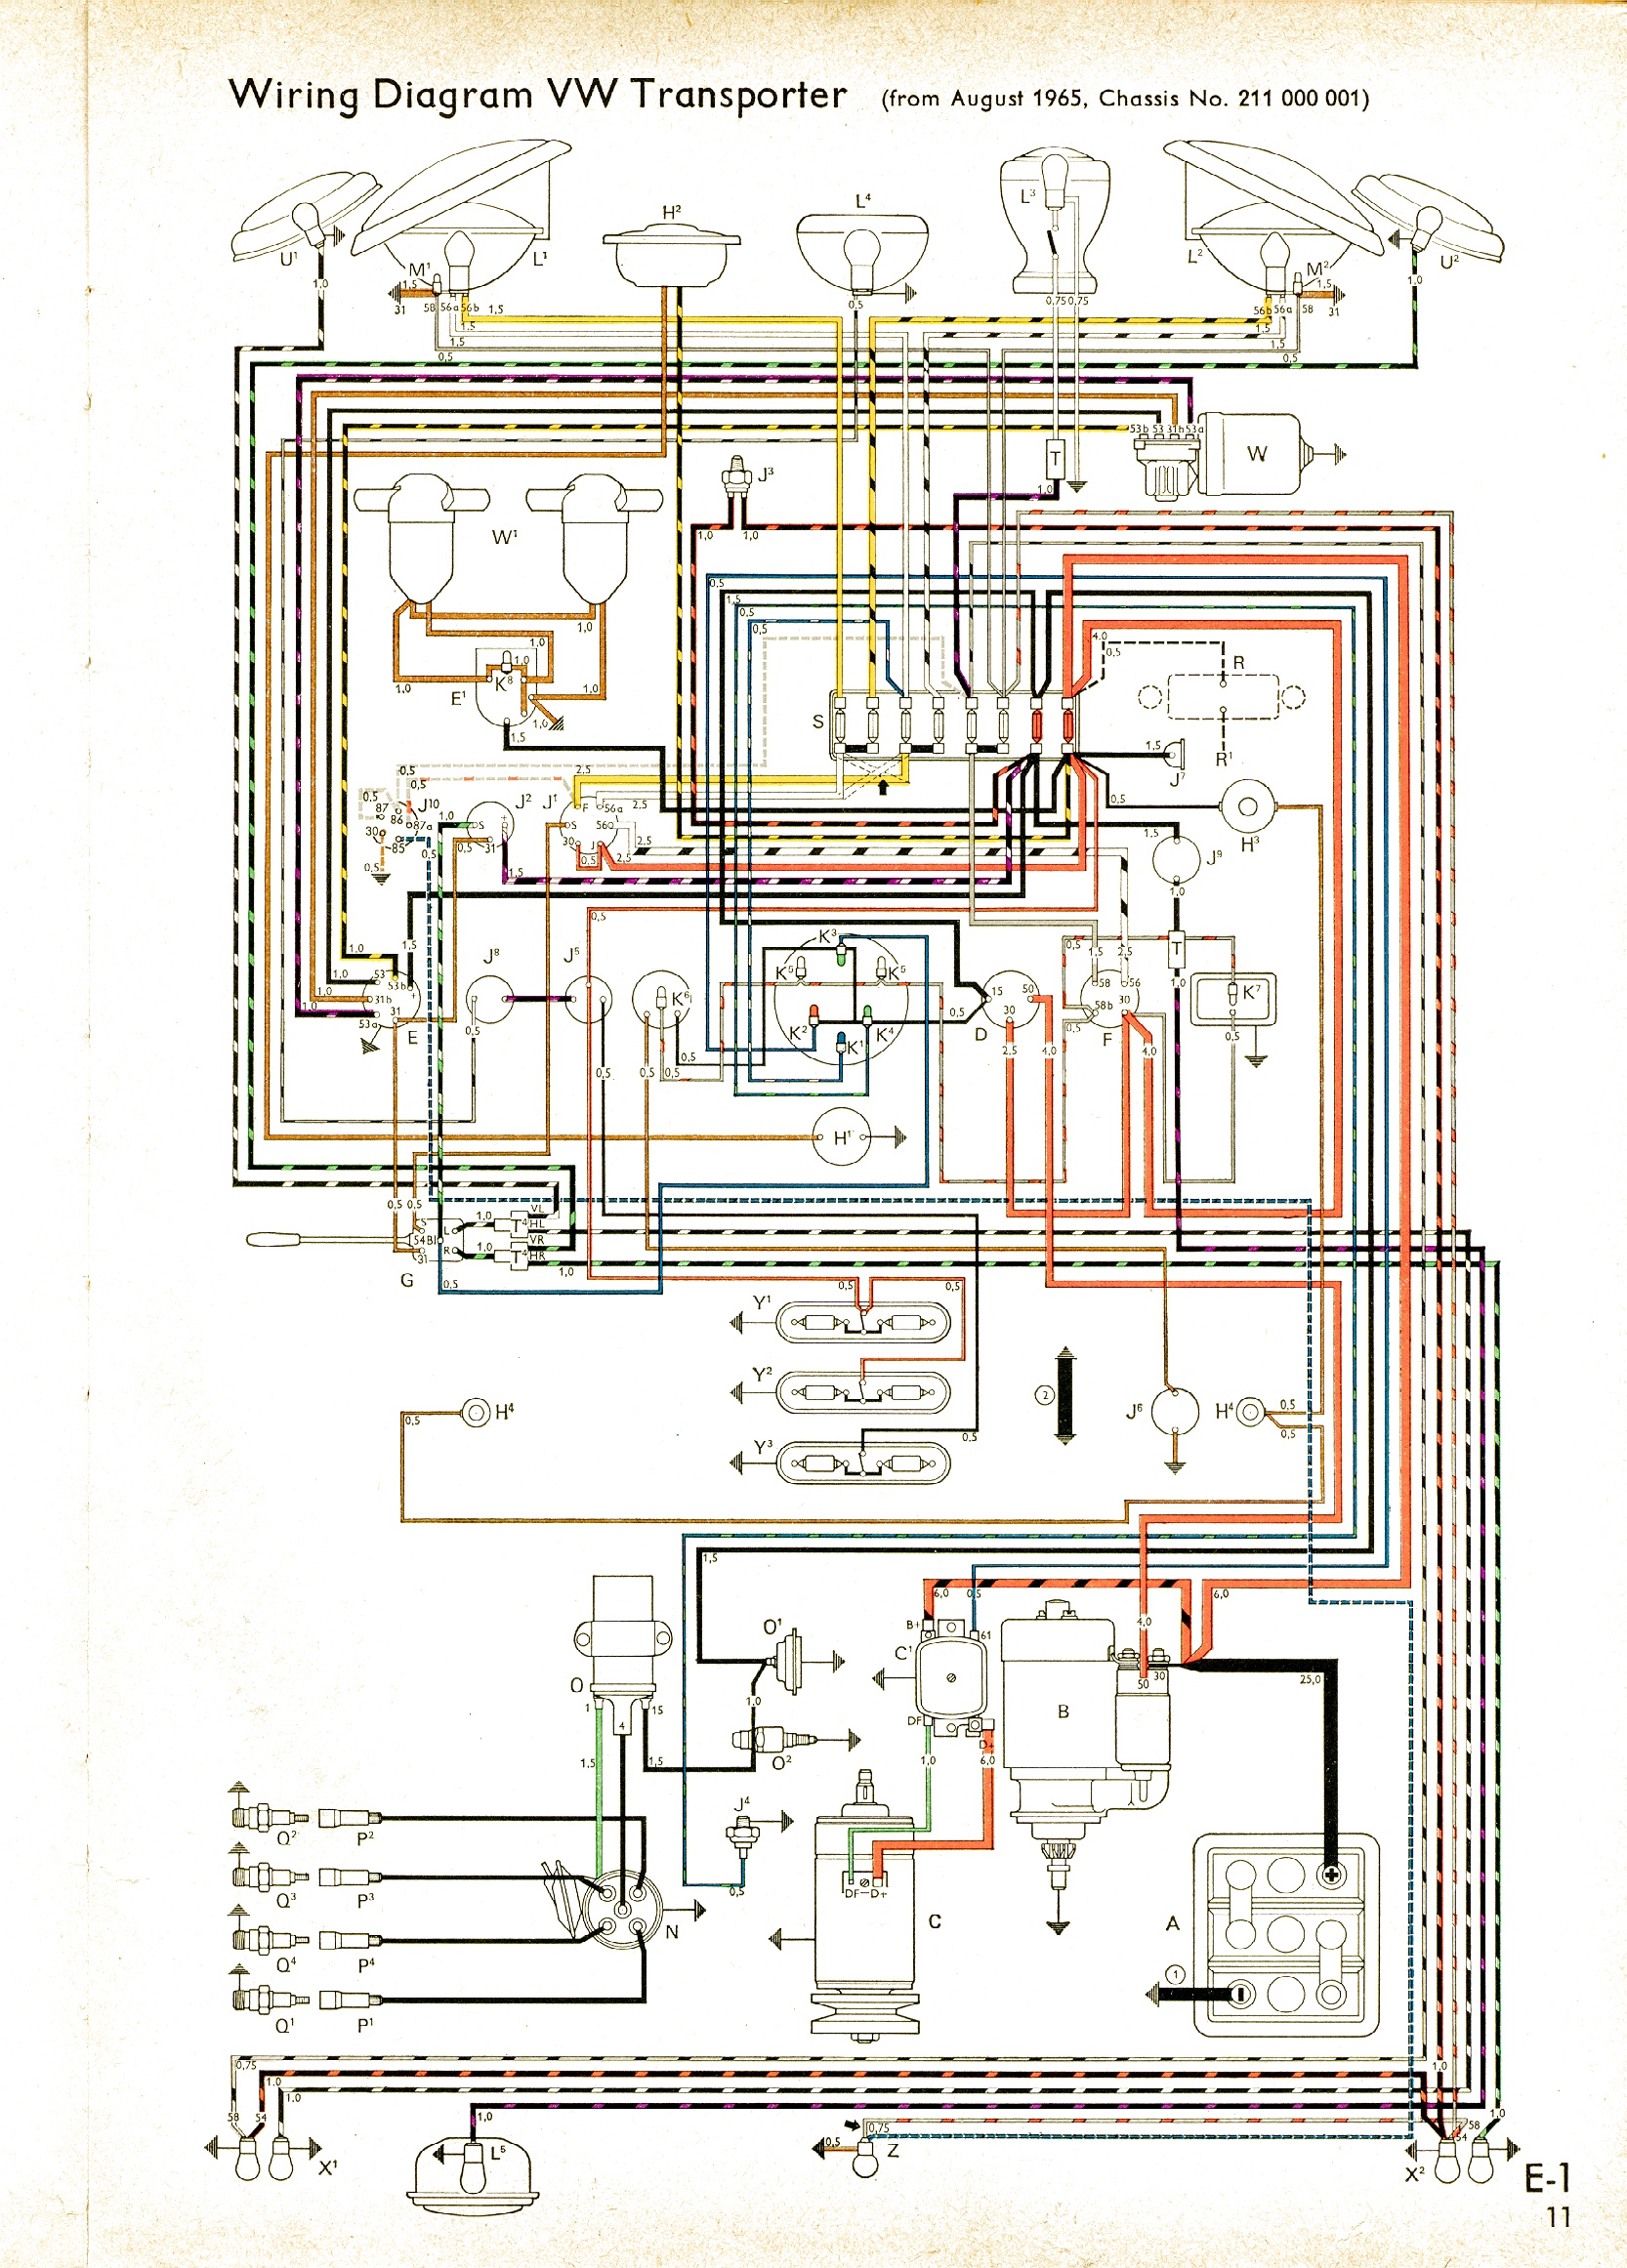 bus 65 electrical wiring diagrams for buses schematics wiring diagram